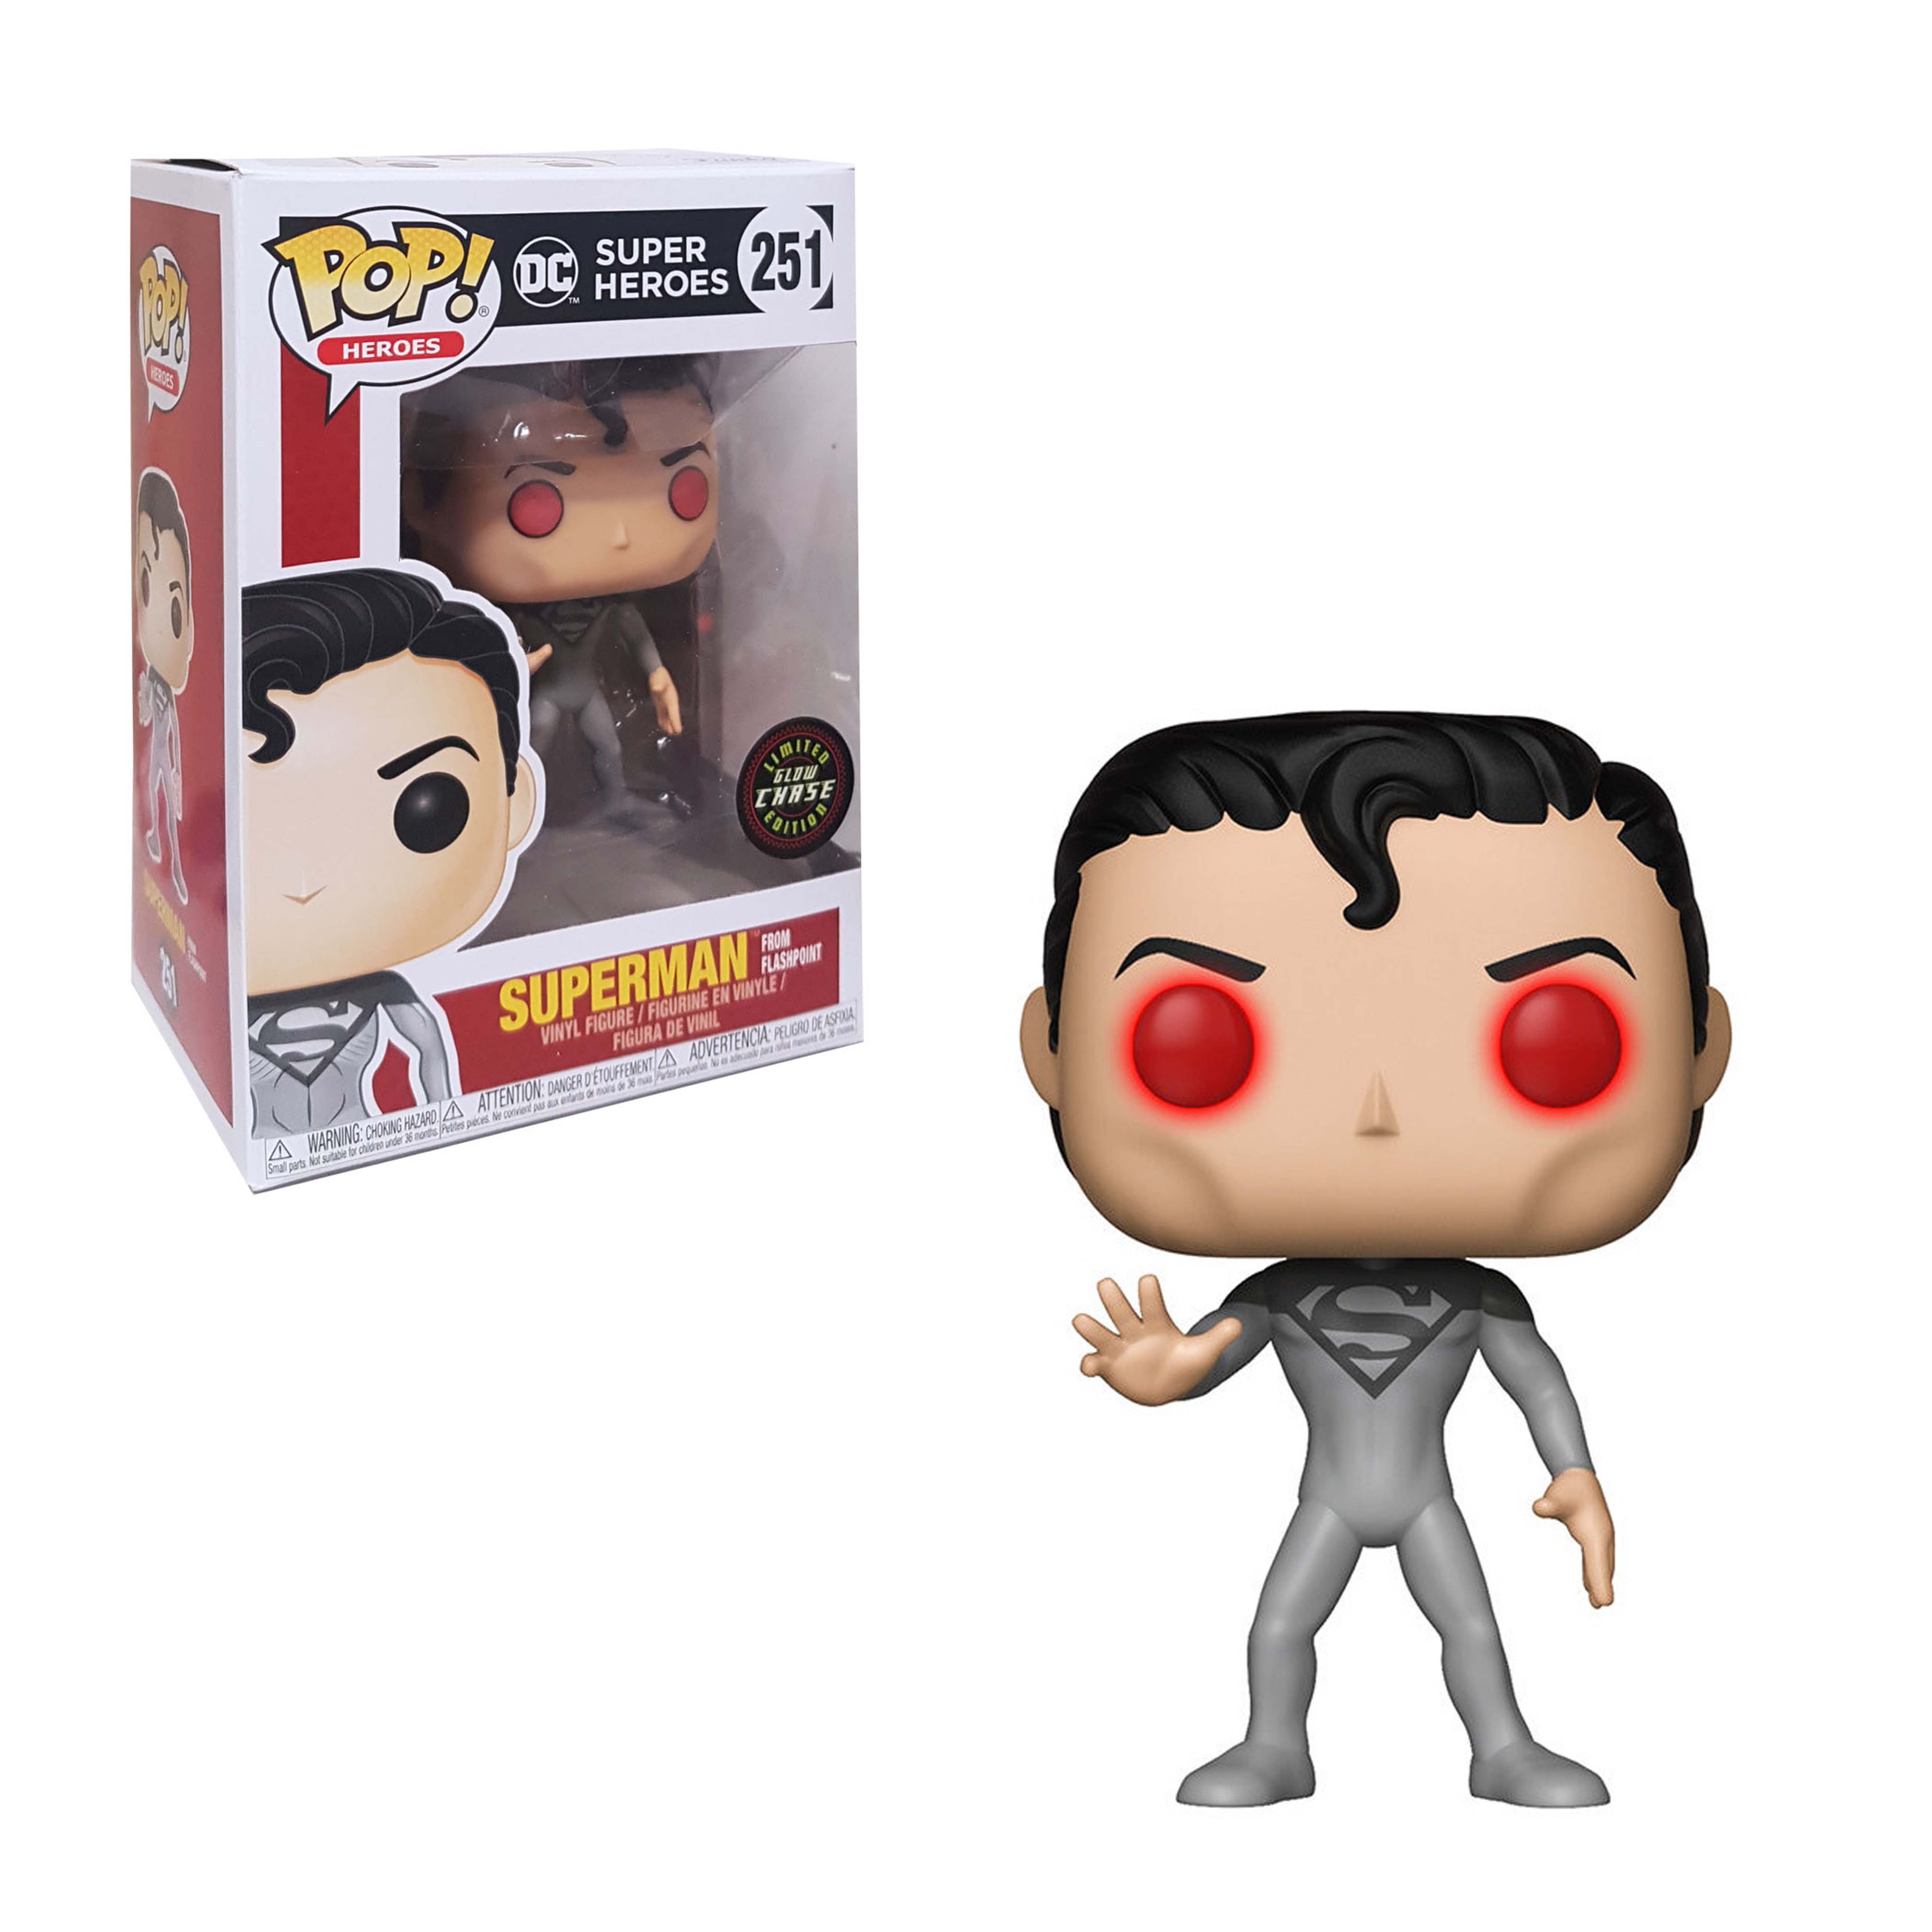 POP DC Super Heroes - Superman from Flashpoint Chase